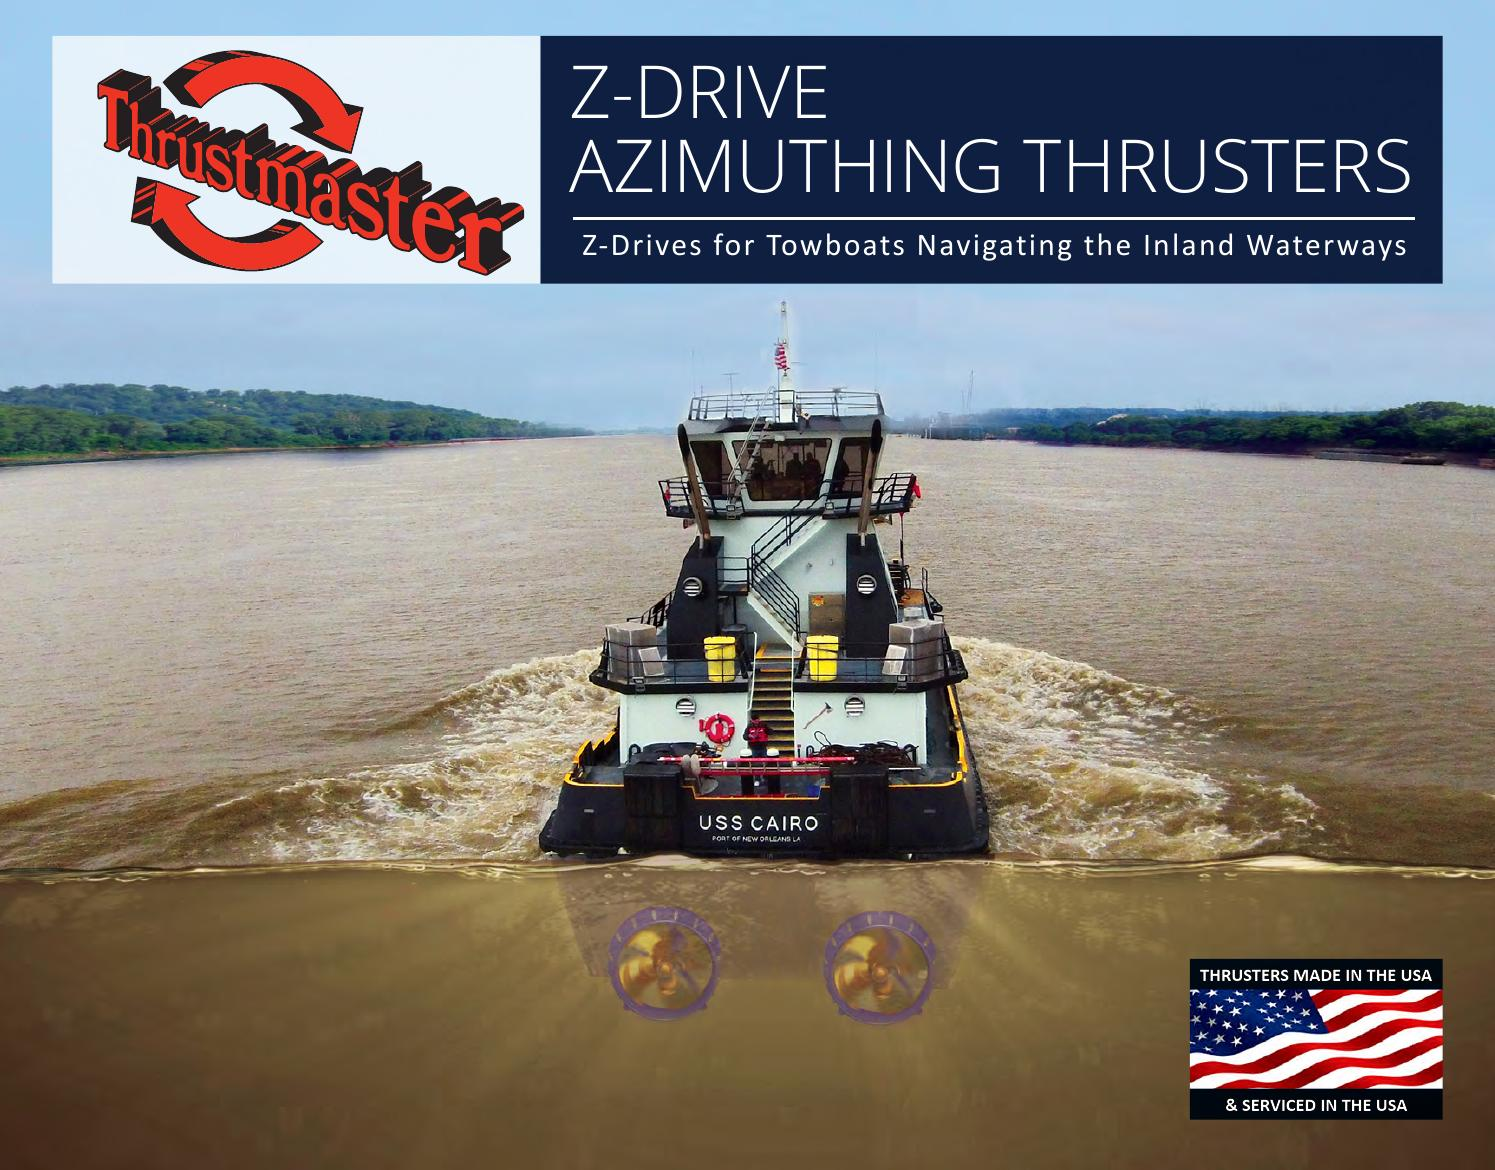 Z-Drive Azimuthing Thrusters for Towboats Operating in the ...